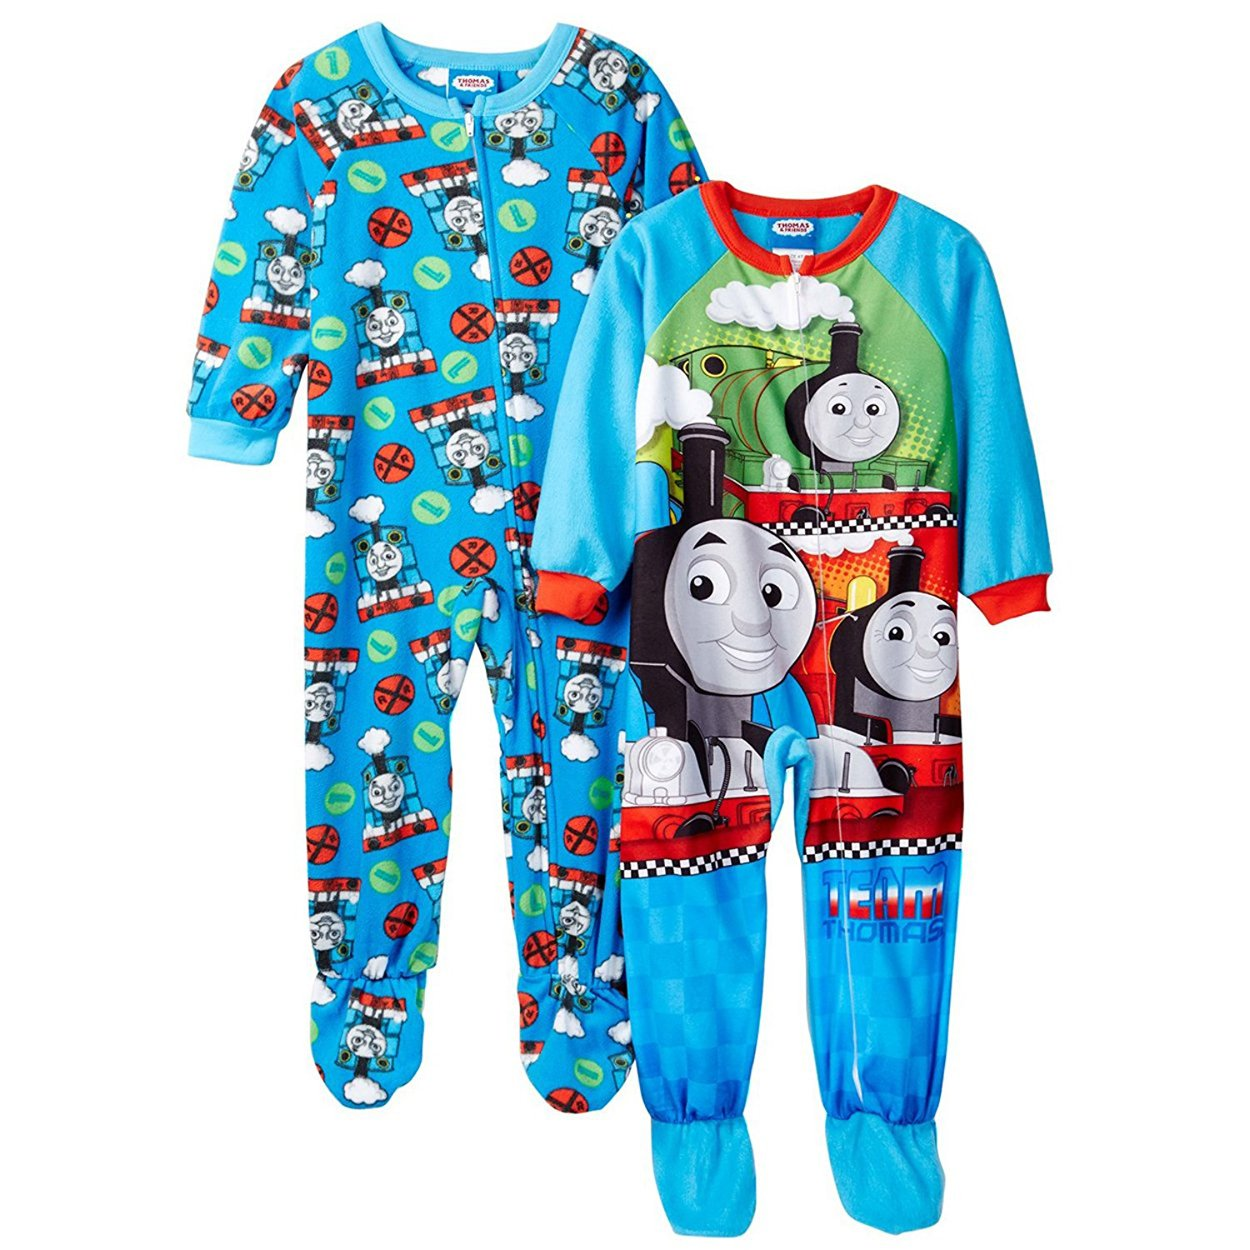 Thomas The Train and Friends 2 Pack Blanket Sleeper Pajamas (Toddler) Blue Thomas) manufacturer